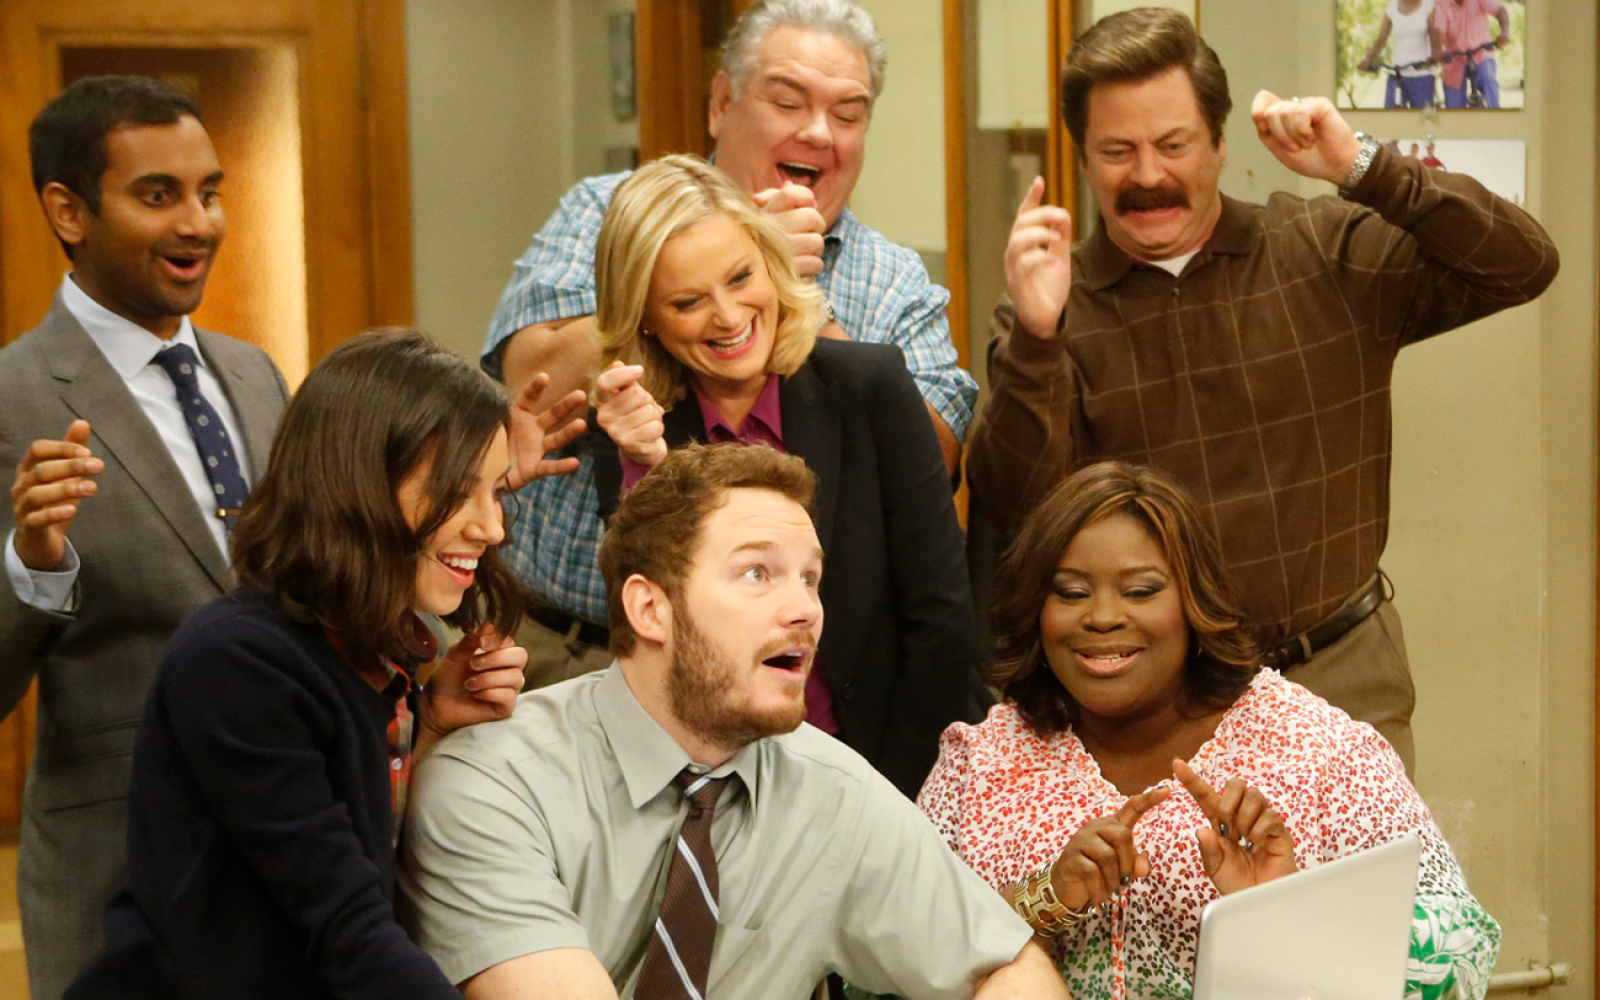 56 Brilliant 'Parks & Rec' Quotes That Will Make You Want To Binge Watch The Whole Series Right Now